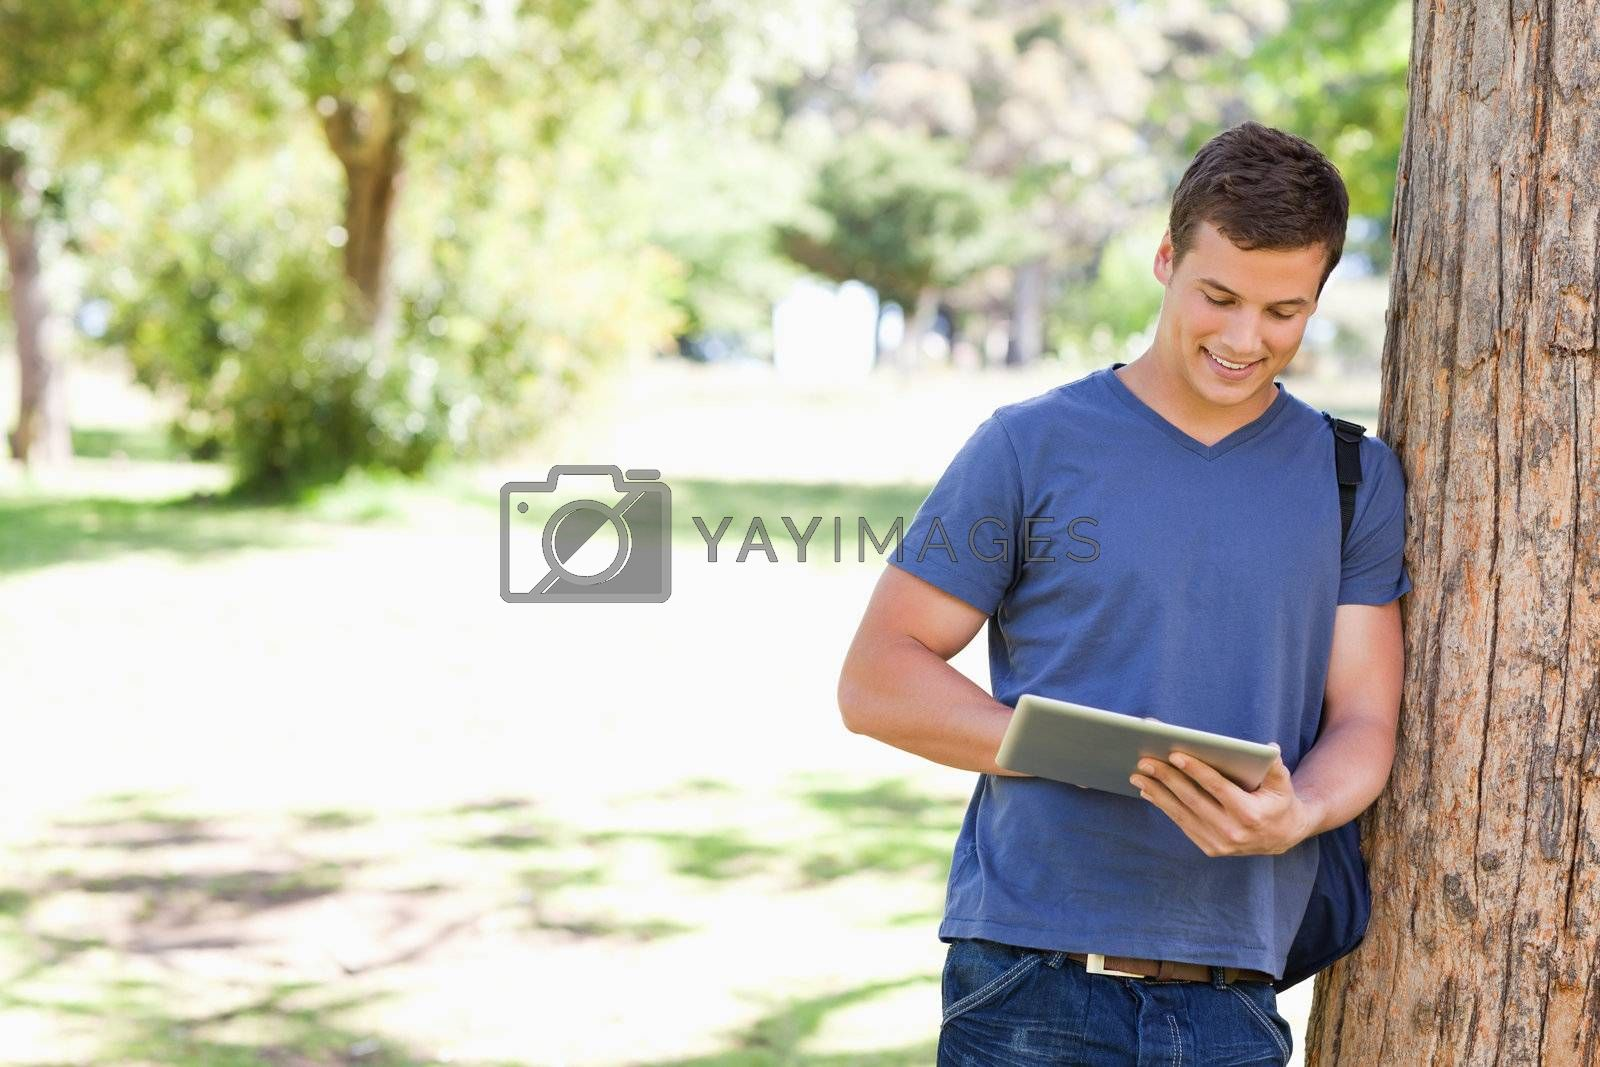 Student leaning against a tree while using a touch pad in a park